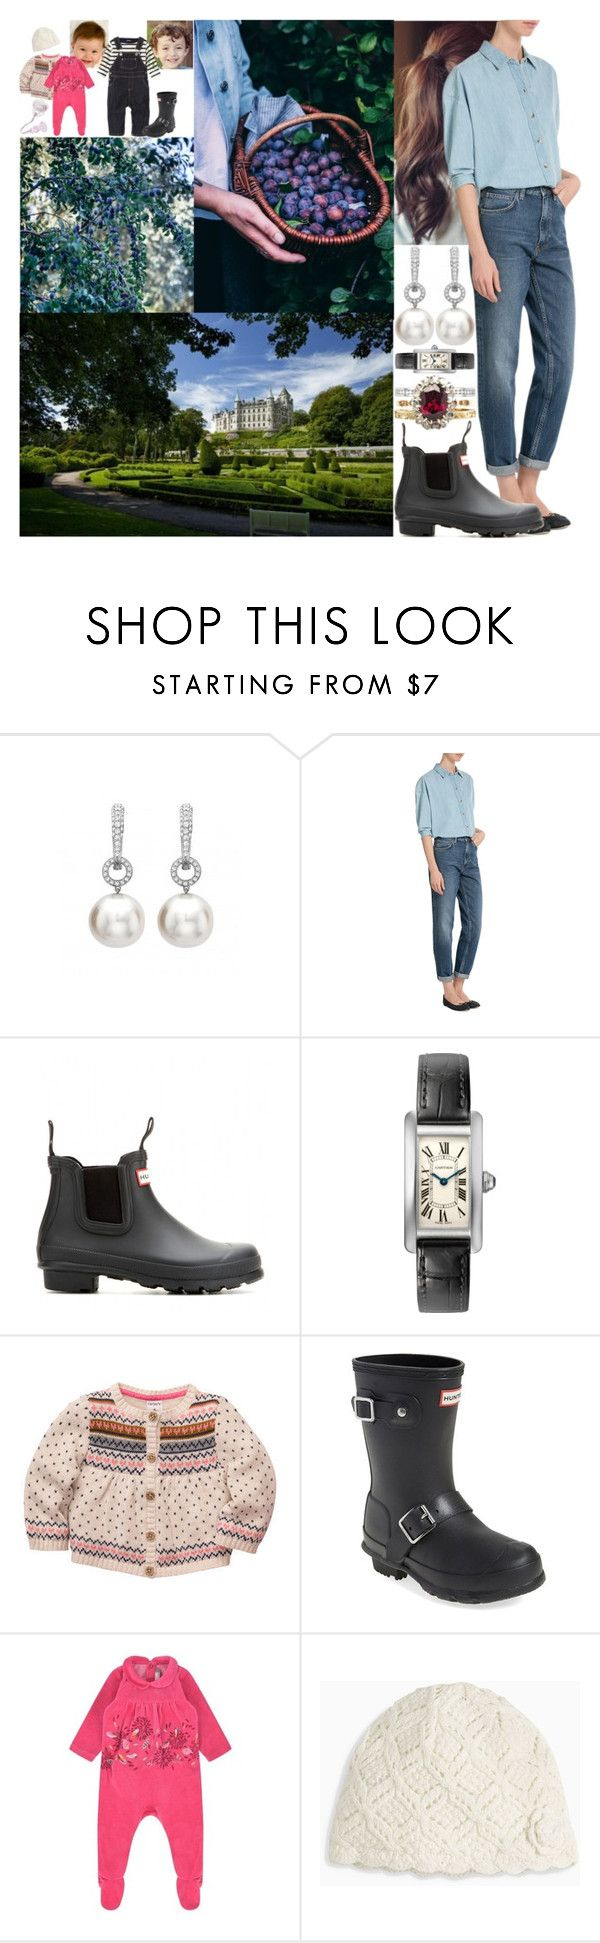 """Picking plums for a cake in the orchard of Dunrobin with the help from Ethan and Lily in the morning"" by marywindsor ❤ liked on Polyvore featuring Topshop, M.i.h Jeans, Hunter, Carter's and Catimini"